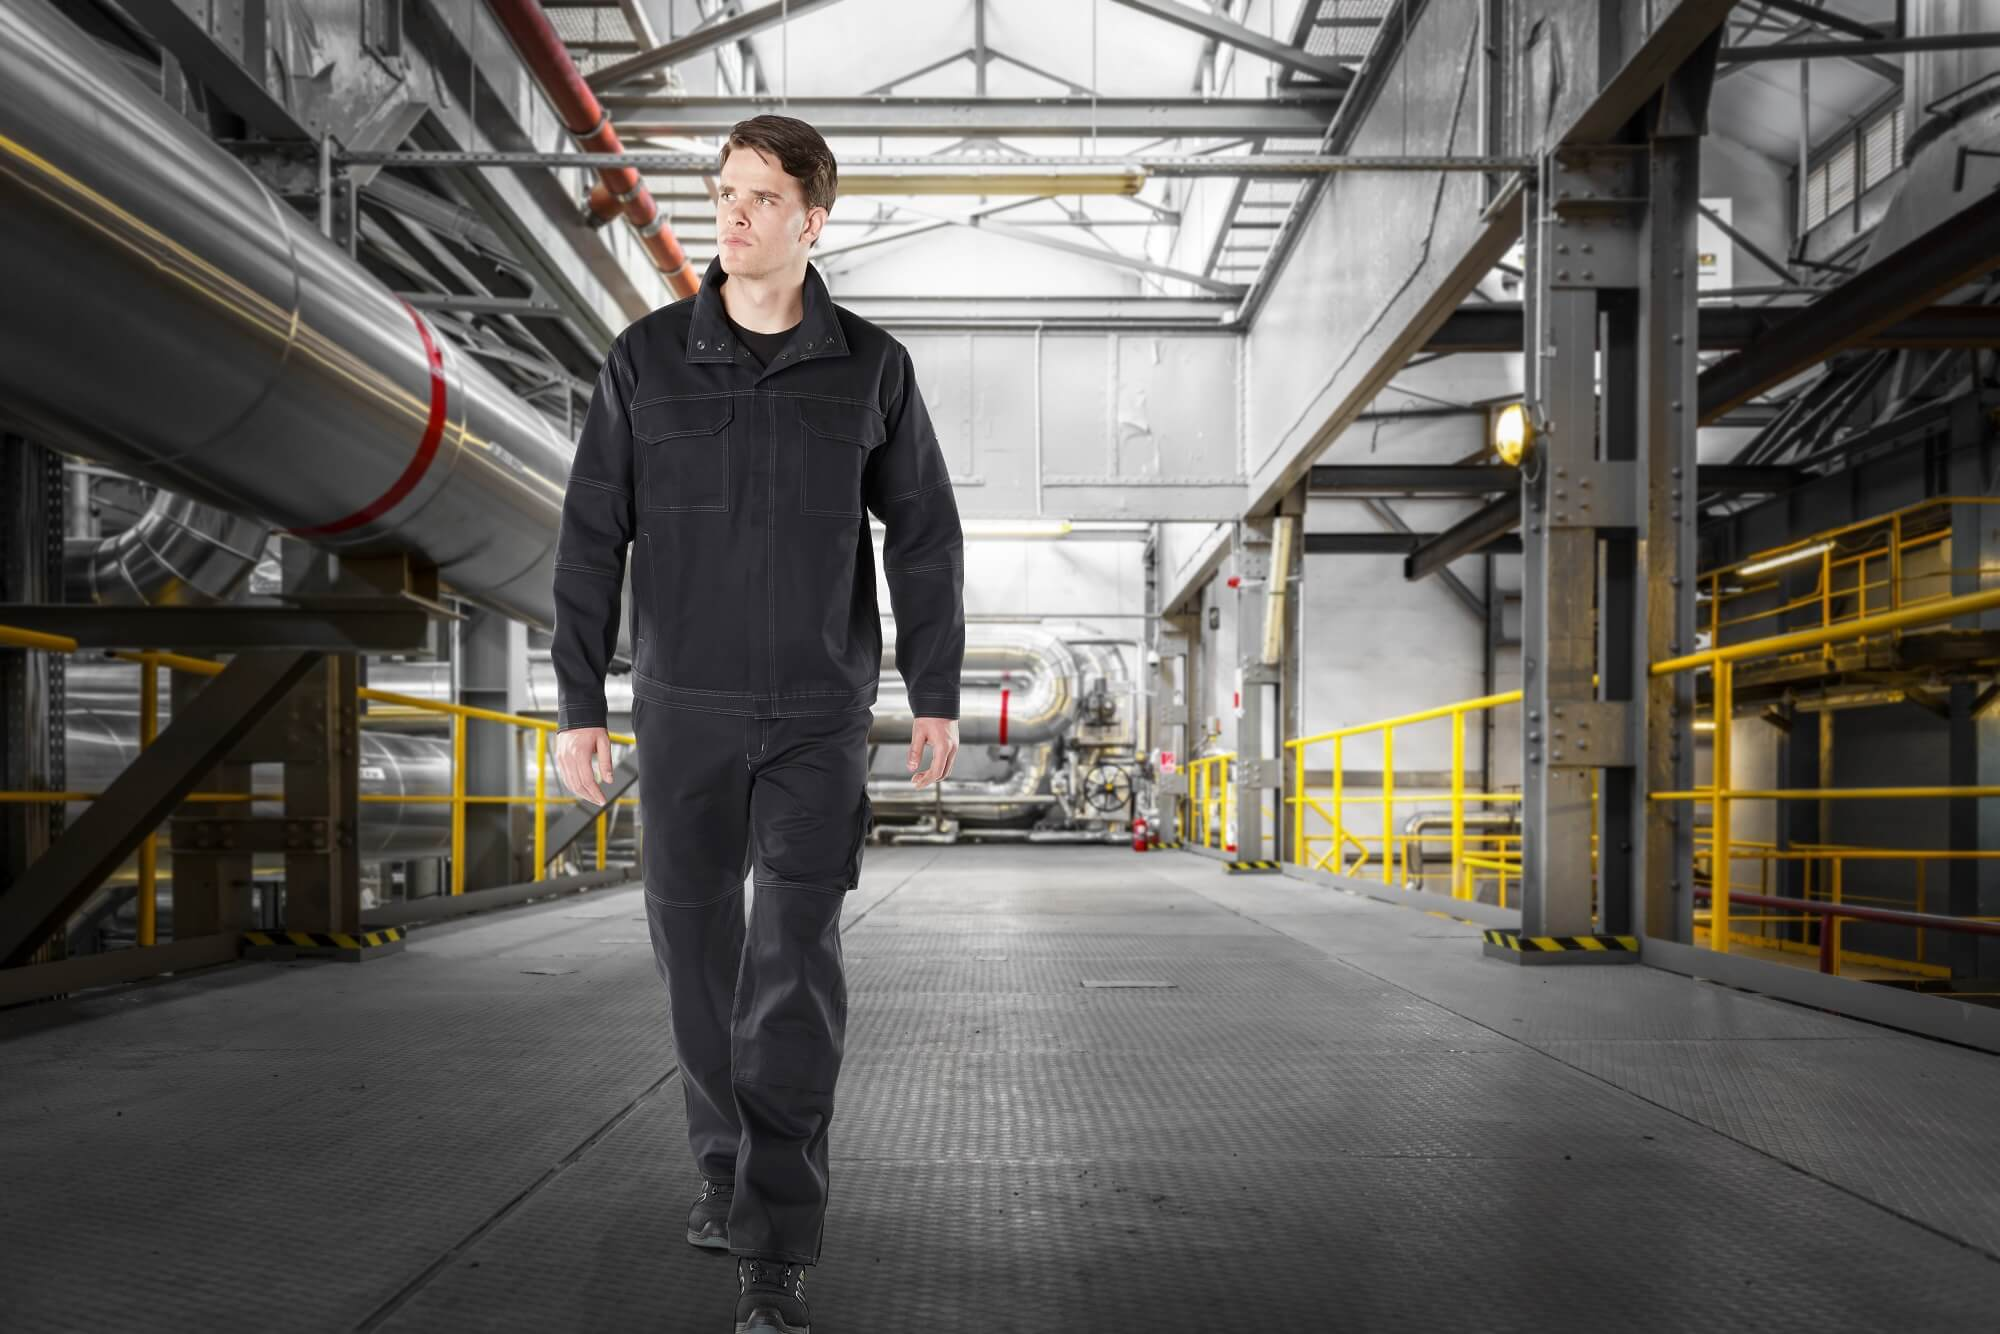 Industry - Work clothes - Environment